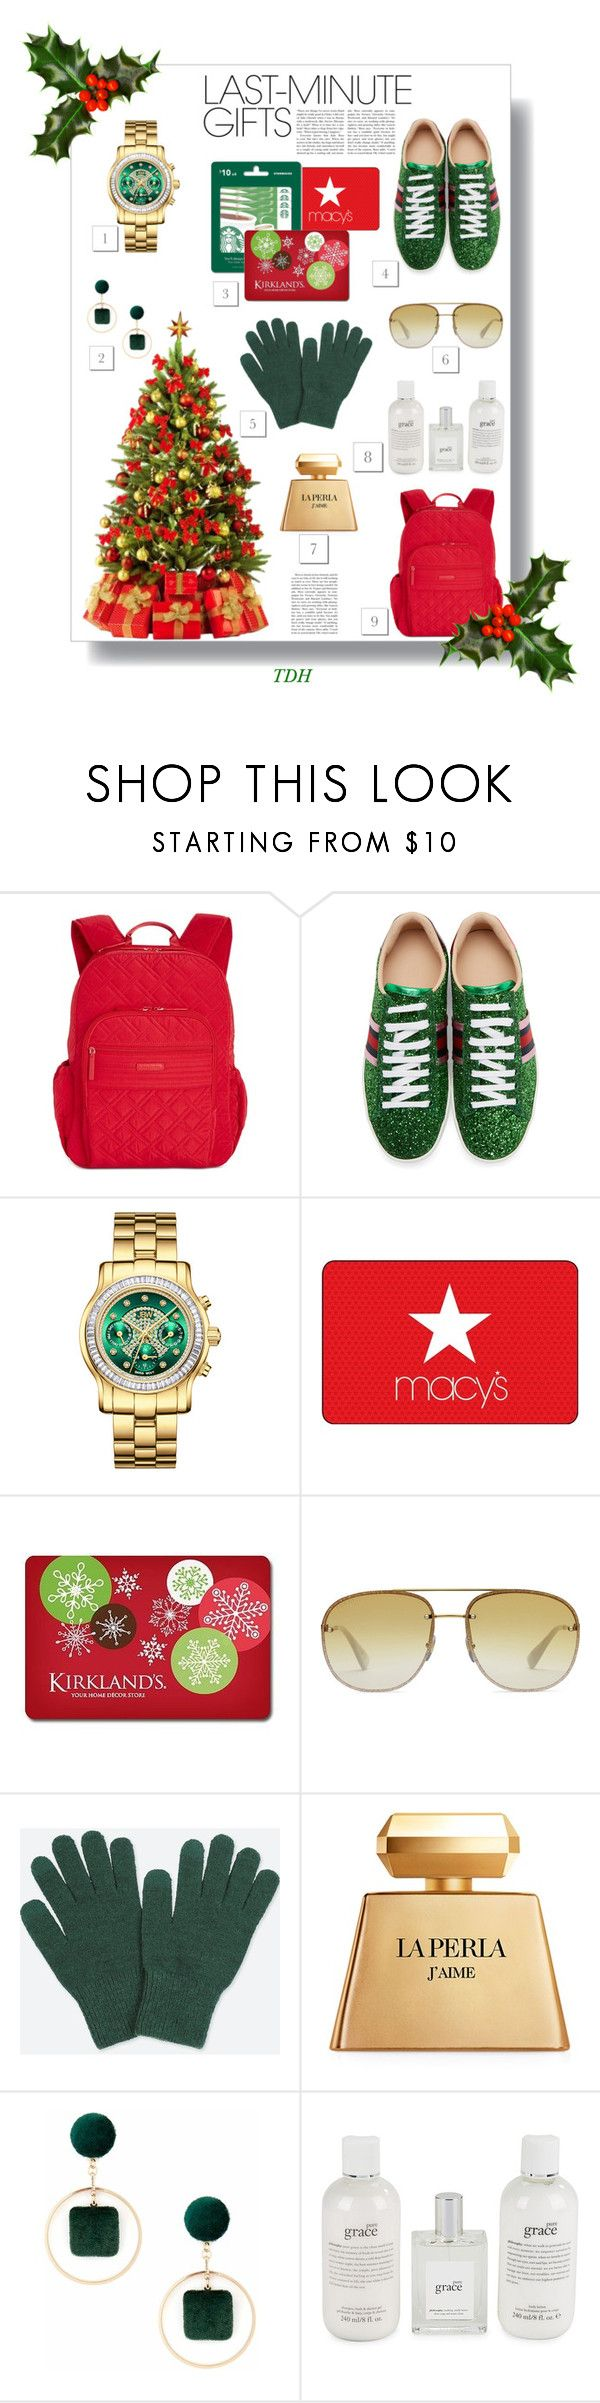 """""""#PolyPresents: Last-Minute Gifts"""" by talvadh ❤ liked on Polyvore featuring Vera Bradley, Gucci, JBW, Uniqlo, La Perla, Sole Society, philosophy, Christmas, gifts and contestentry"""